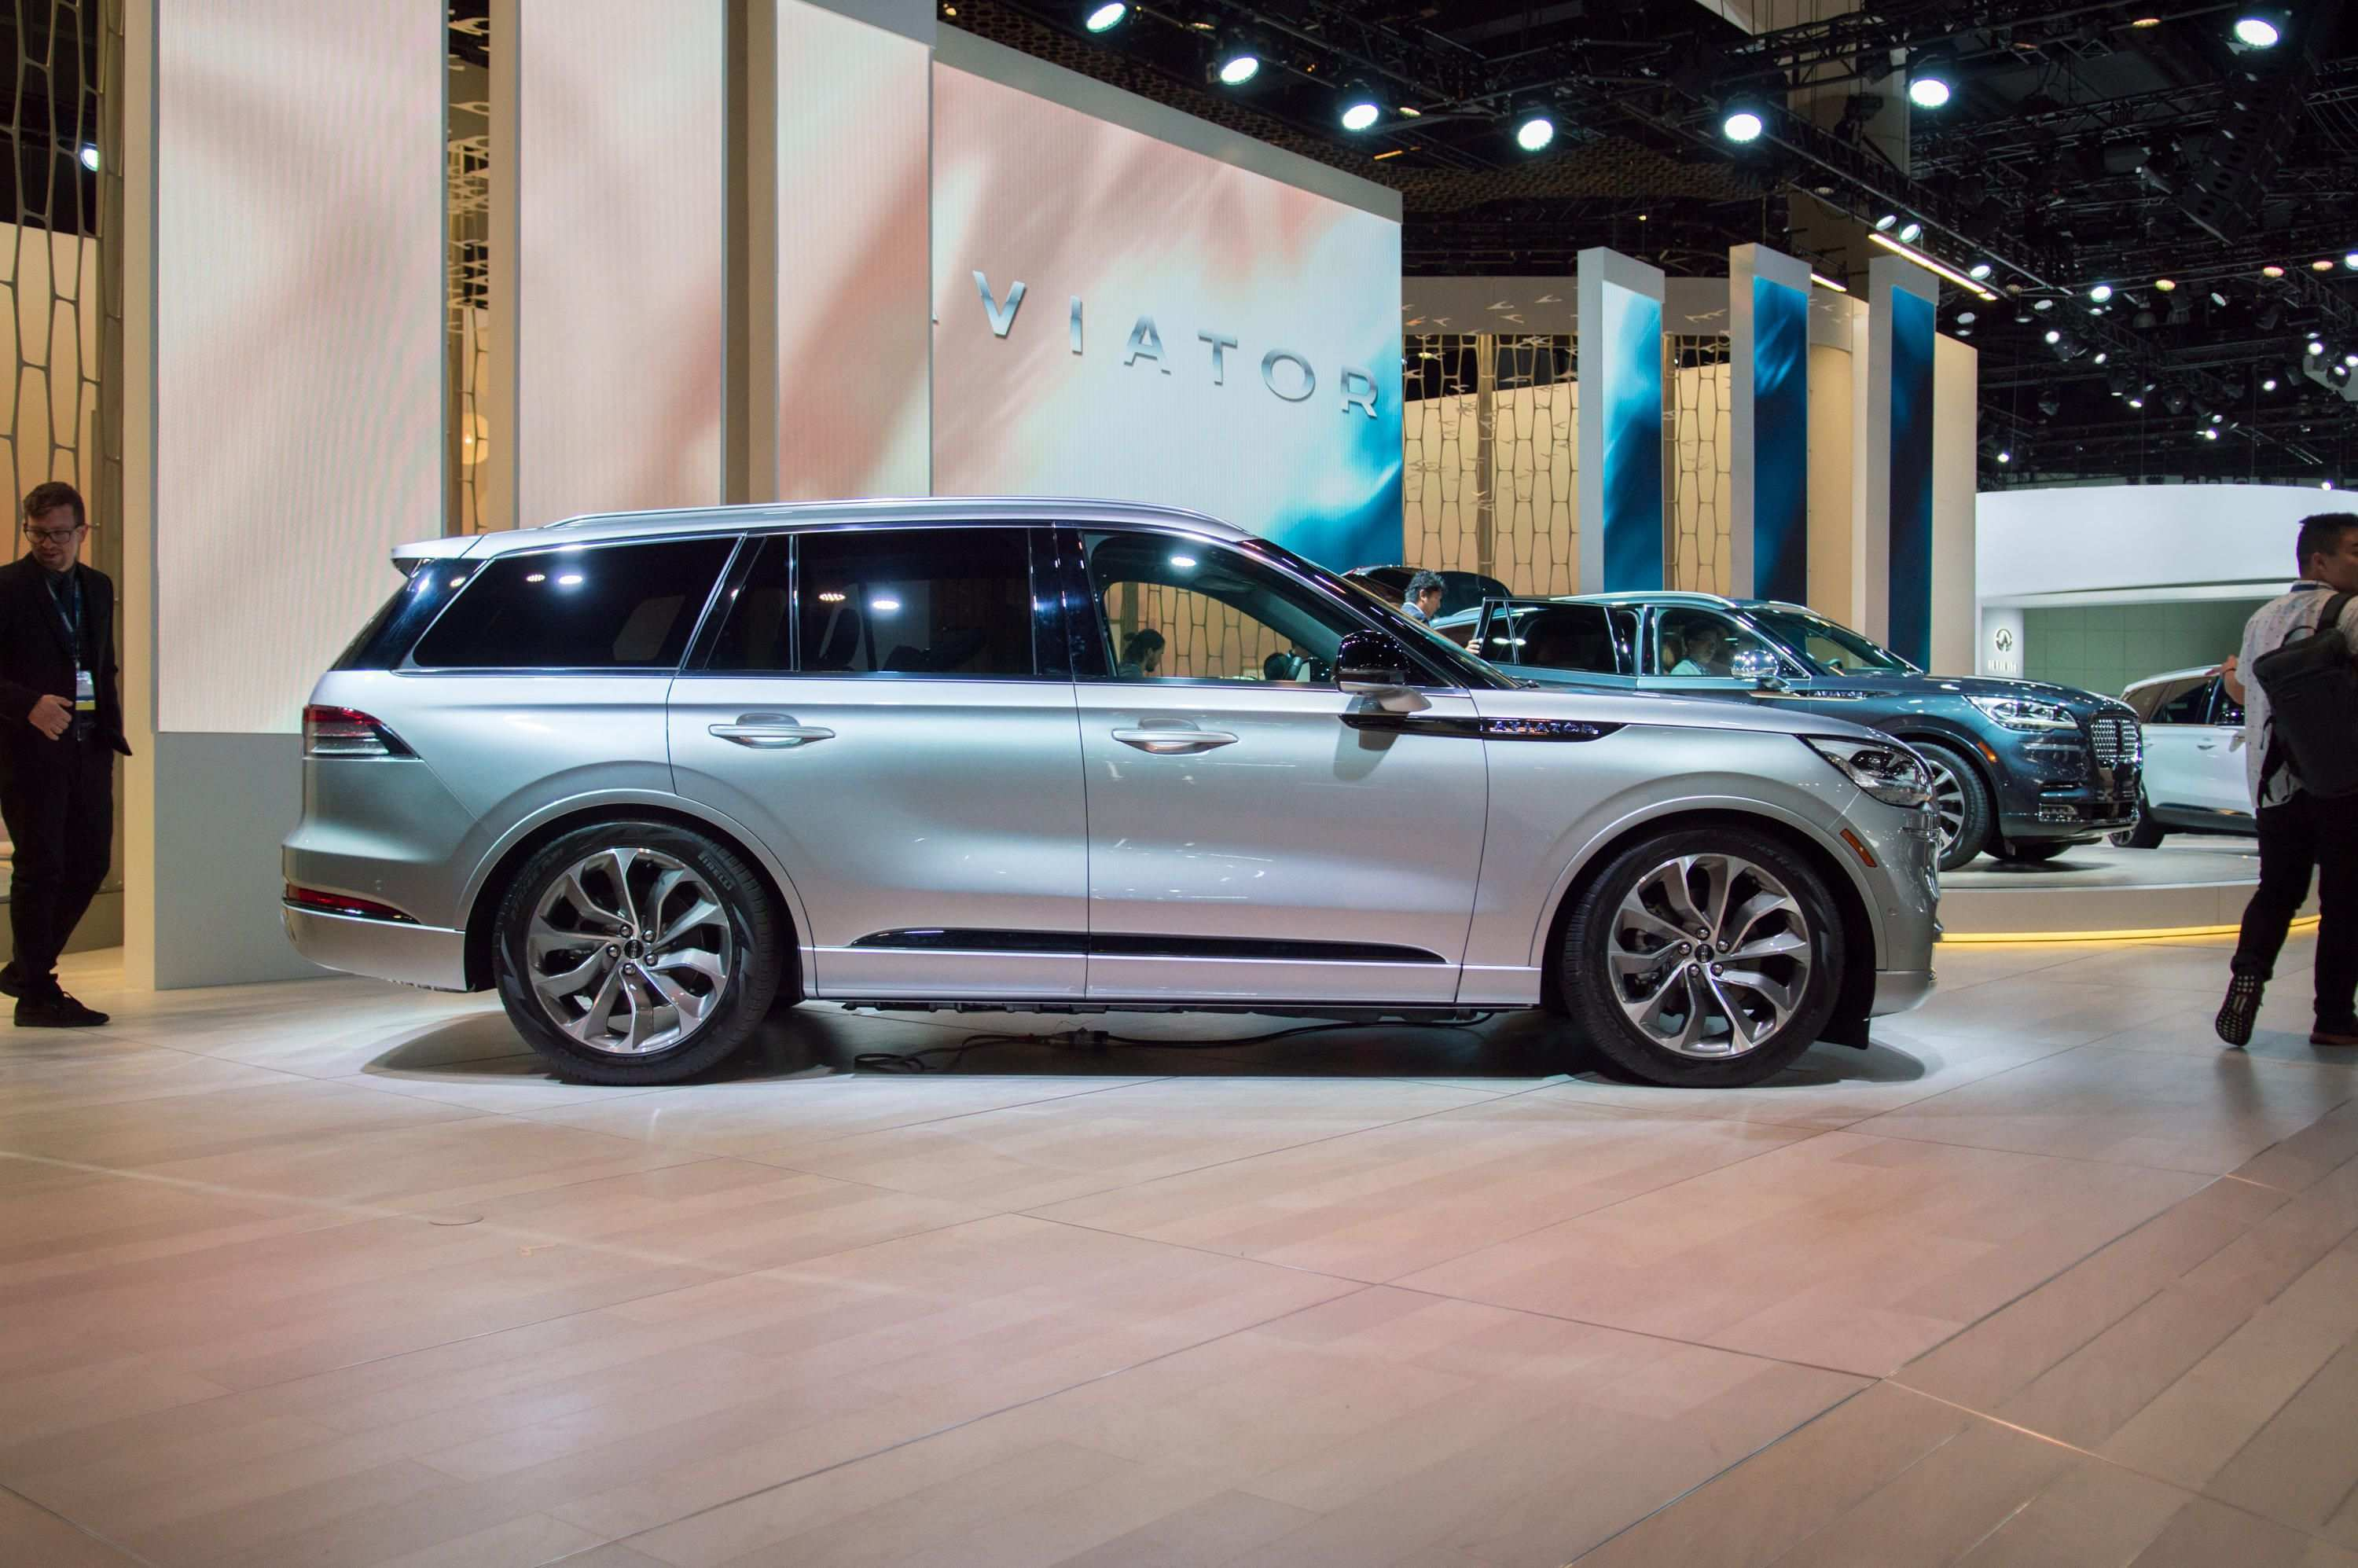 64 All New 2020 Lincoln Navigator Configurations